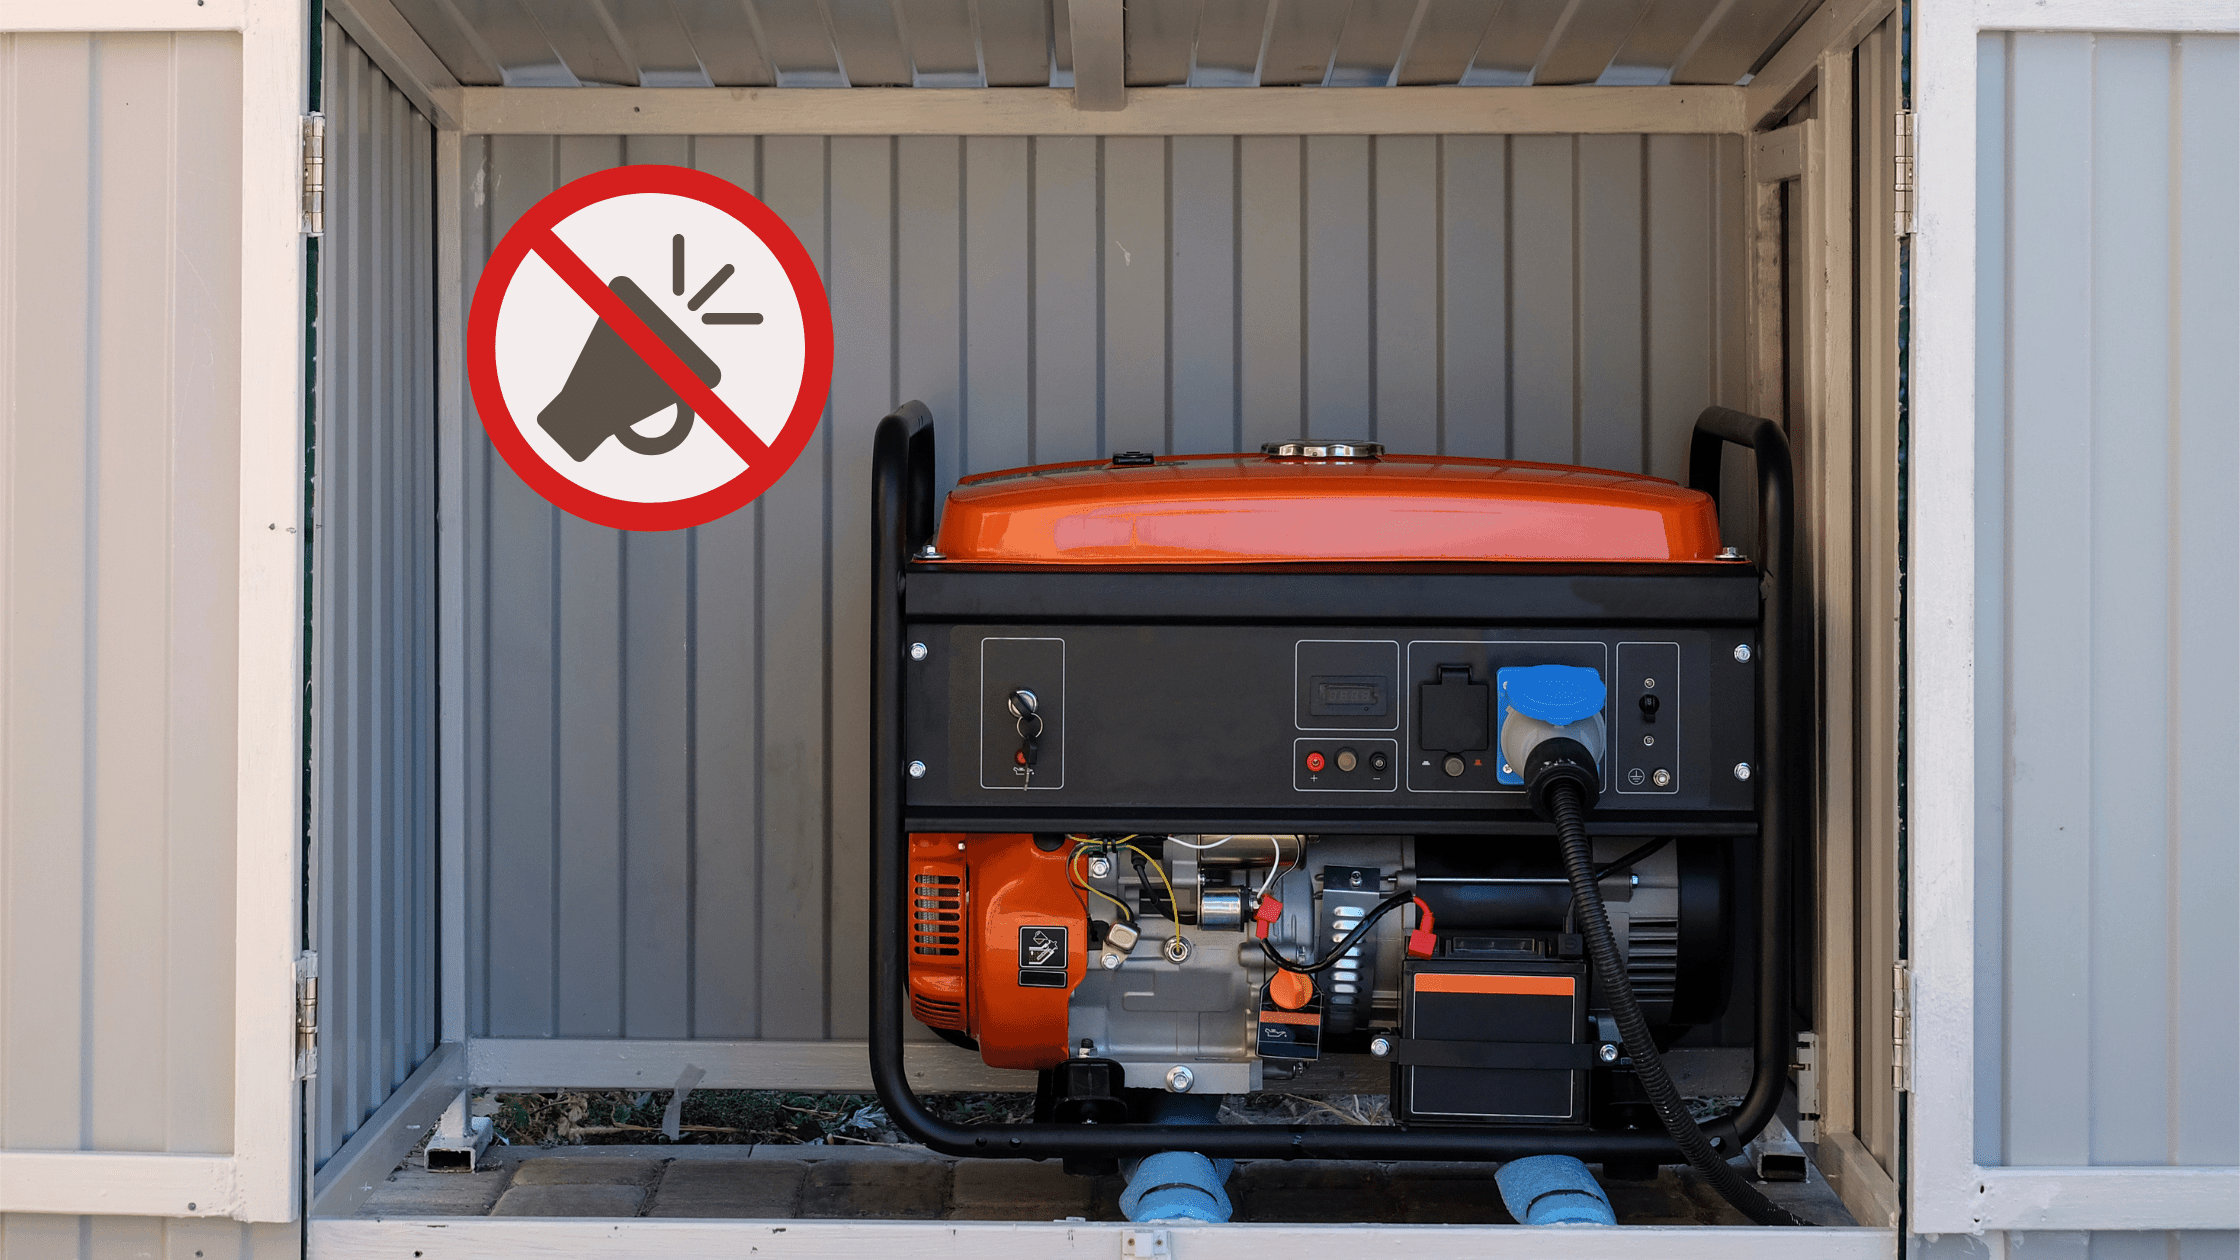 How To Soundproof A Generator Enclosure: Complete DIY Guide